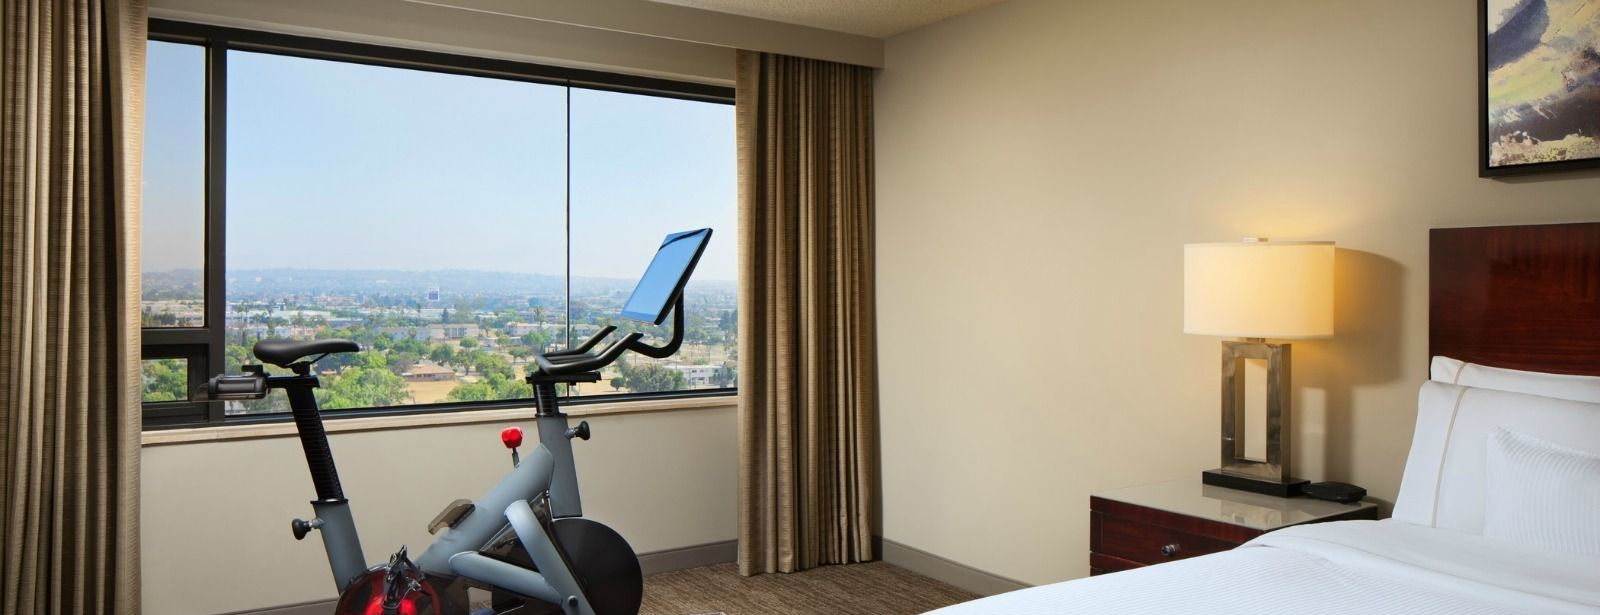 WestinWORKOUT® Room - guest room with Peloton bike